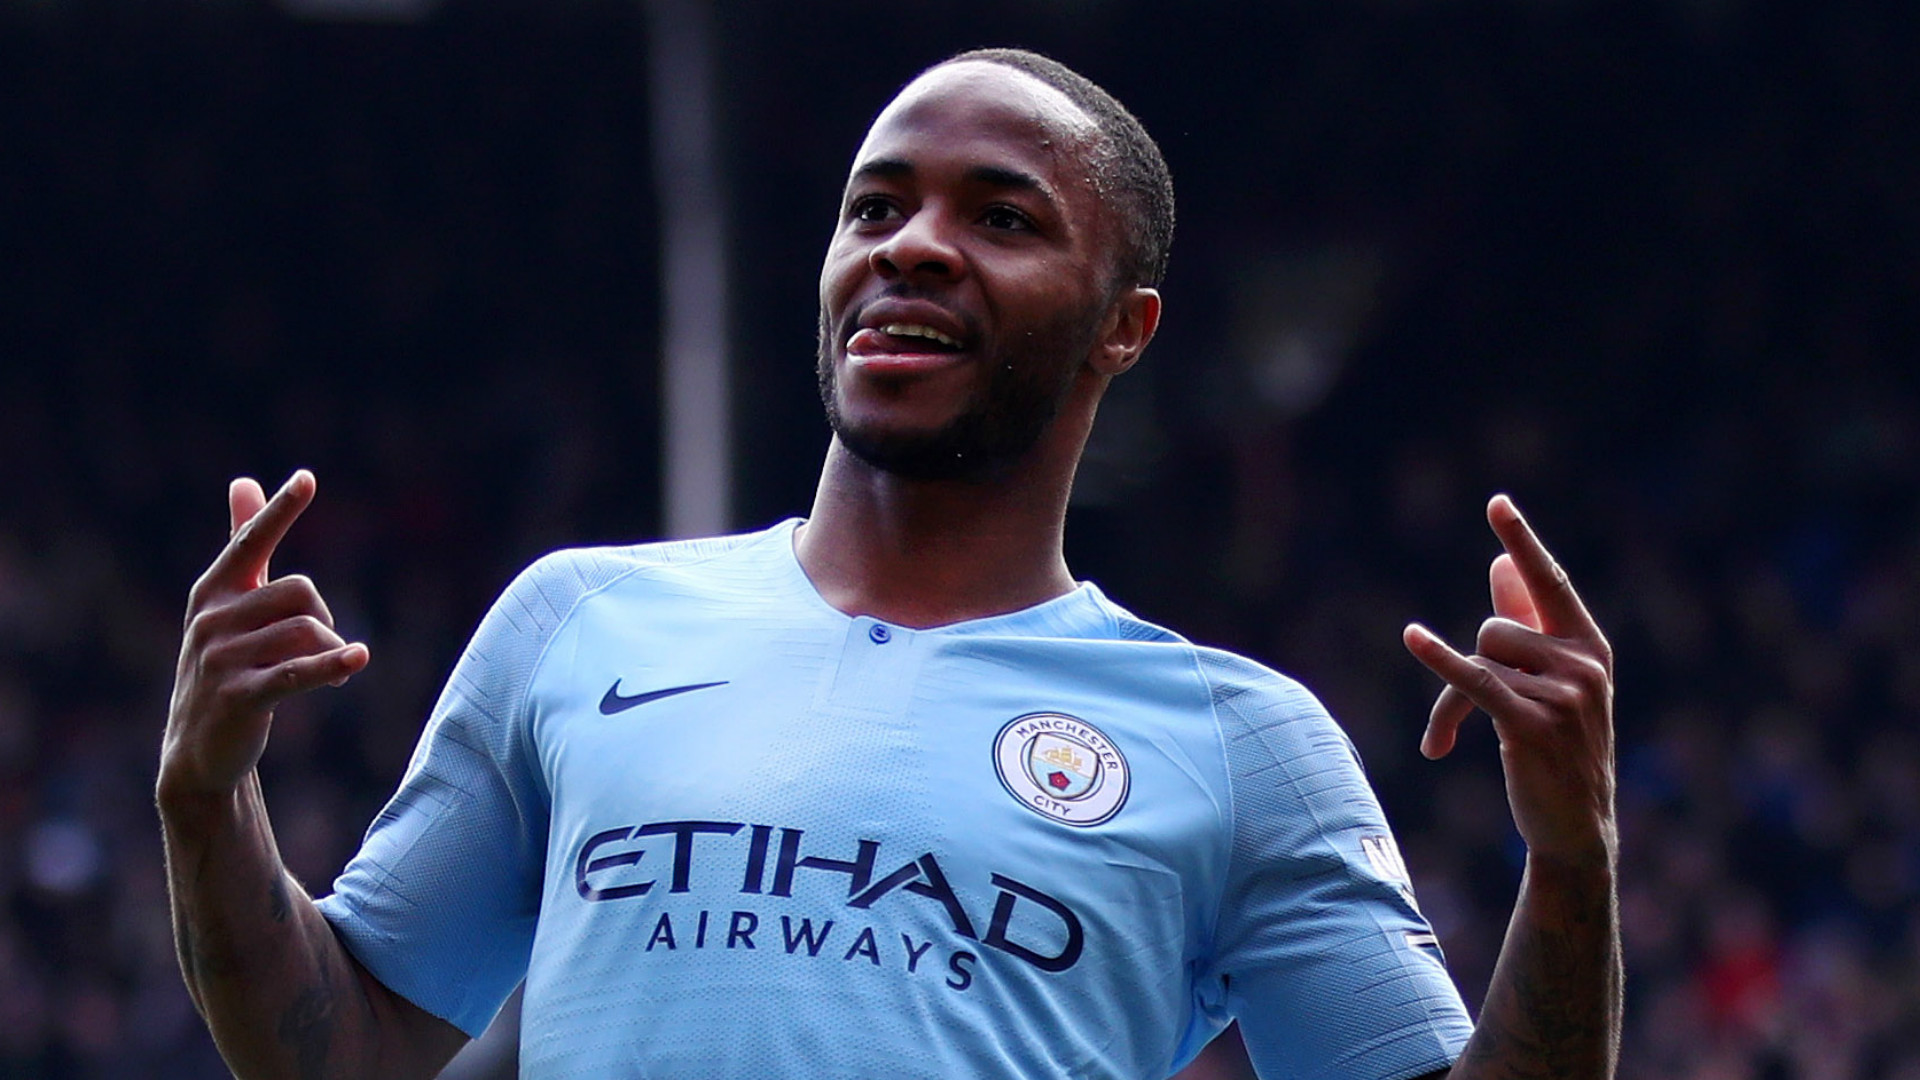 Sterling airs MLS ambition as Man City star plots future in America